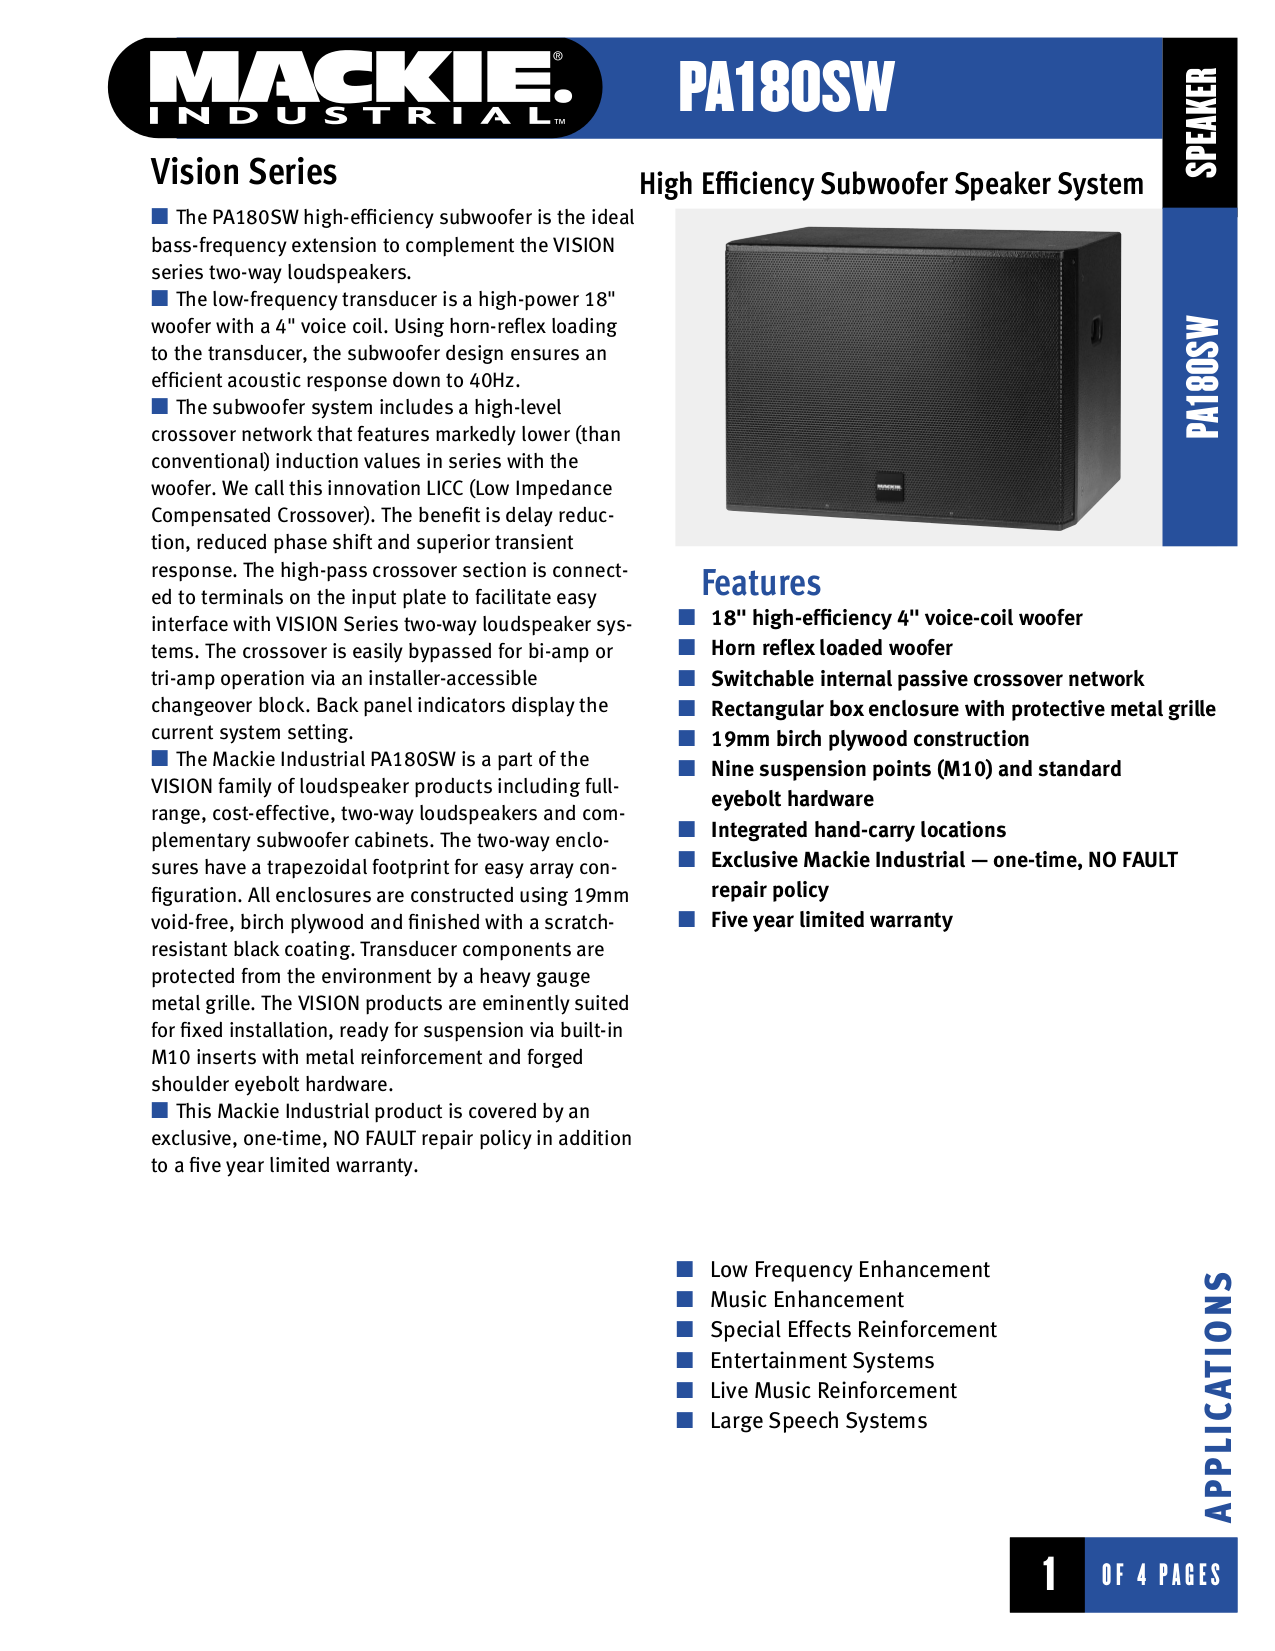 pdf for Mackie Speaker System Vision Series PA180SW manual